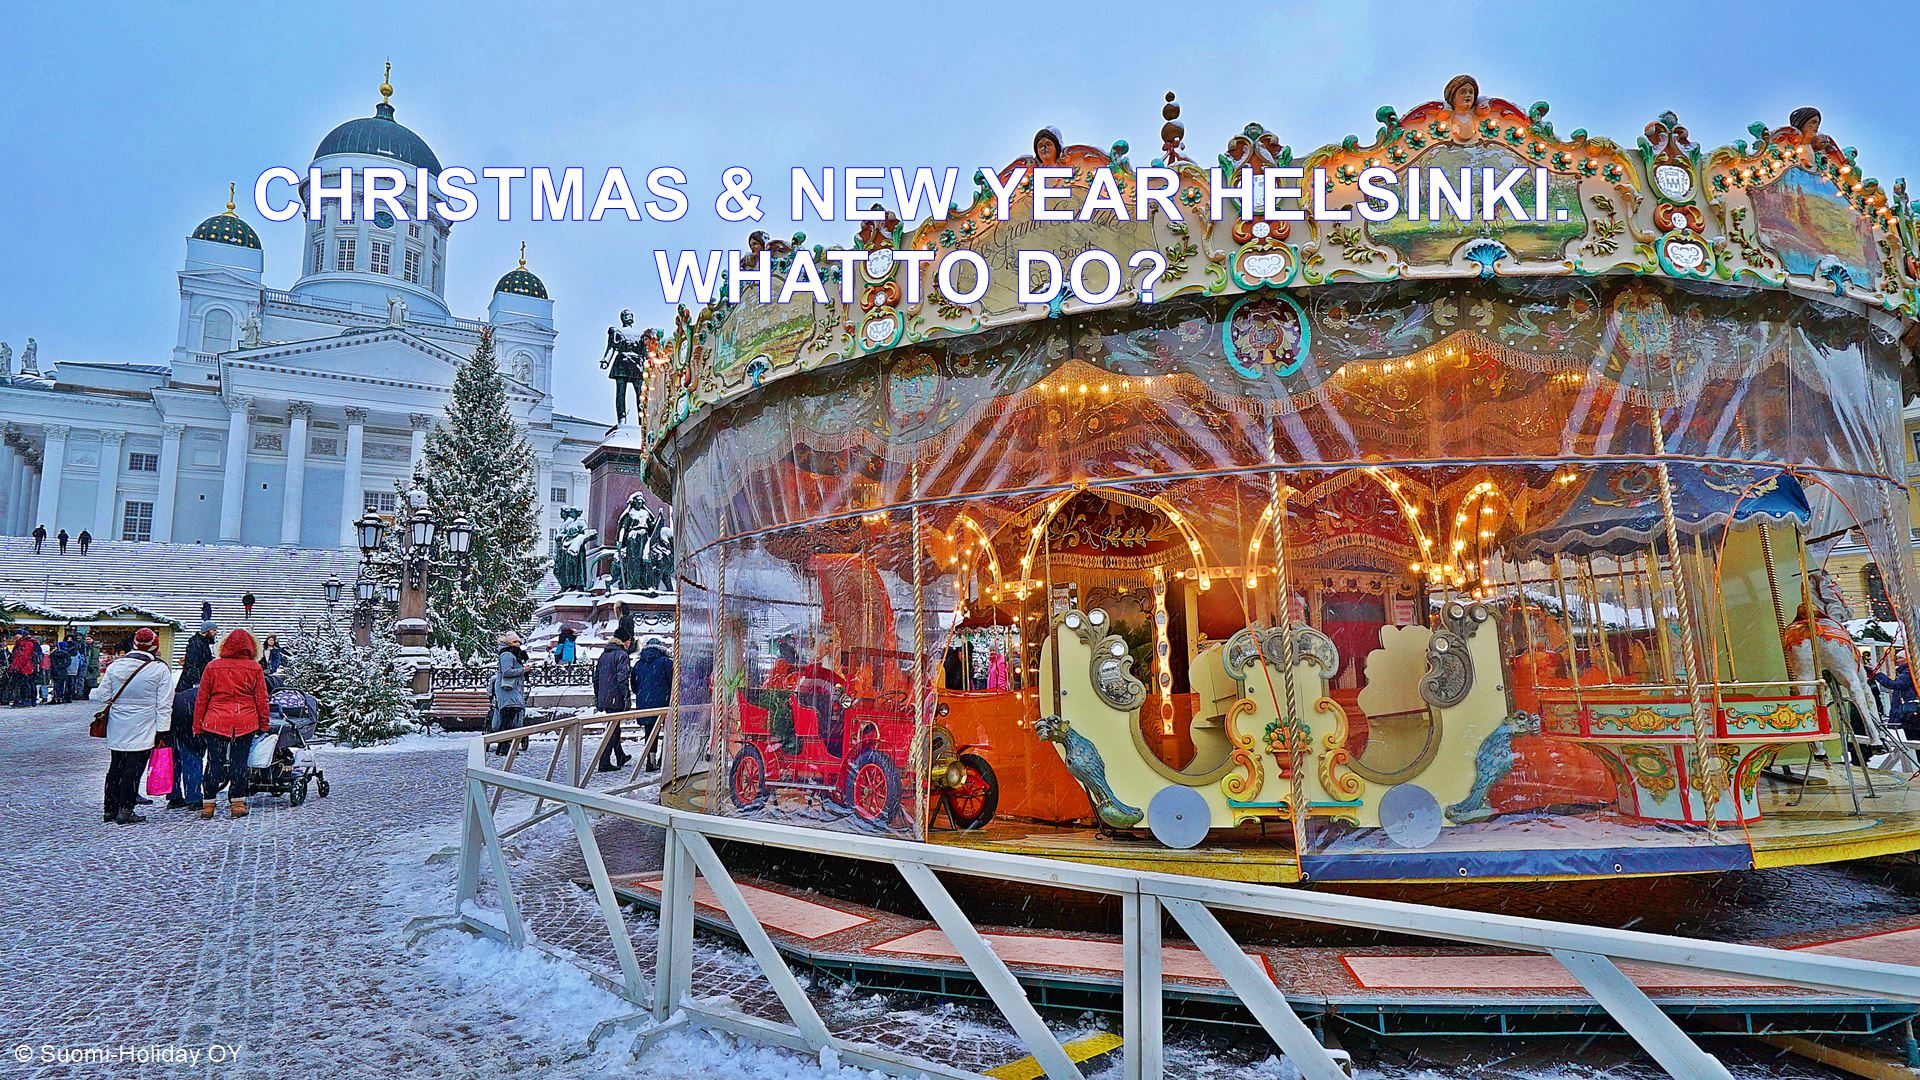 Finland Christmas Market 2019.Christmas Helsinki New Year Helsinki In Finland What To Do